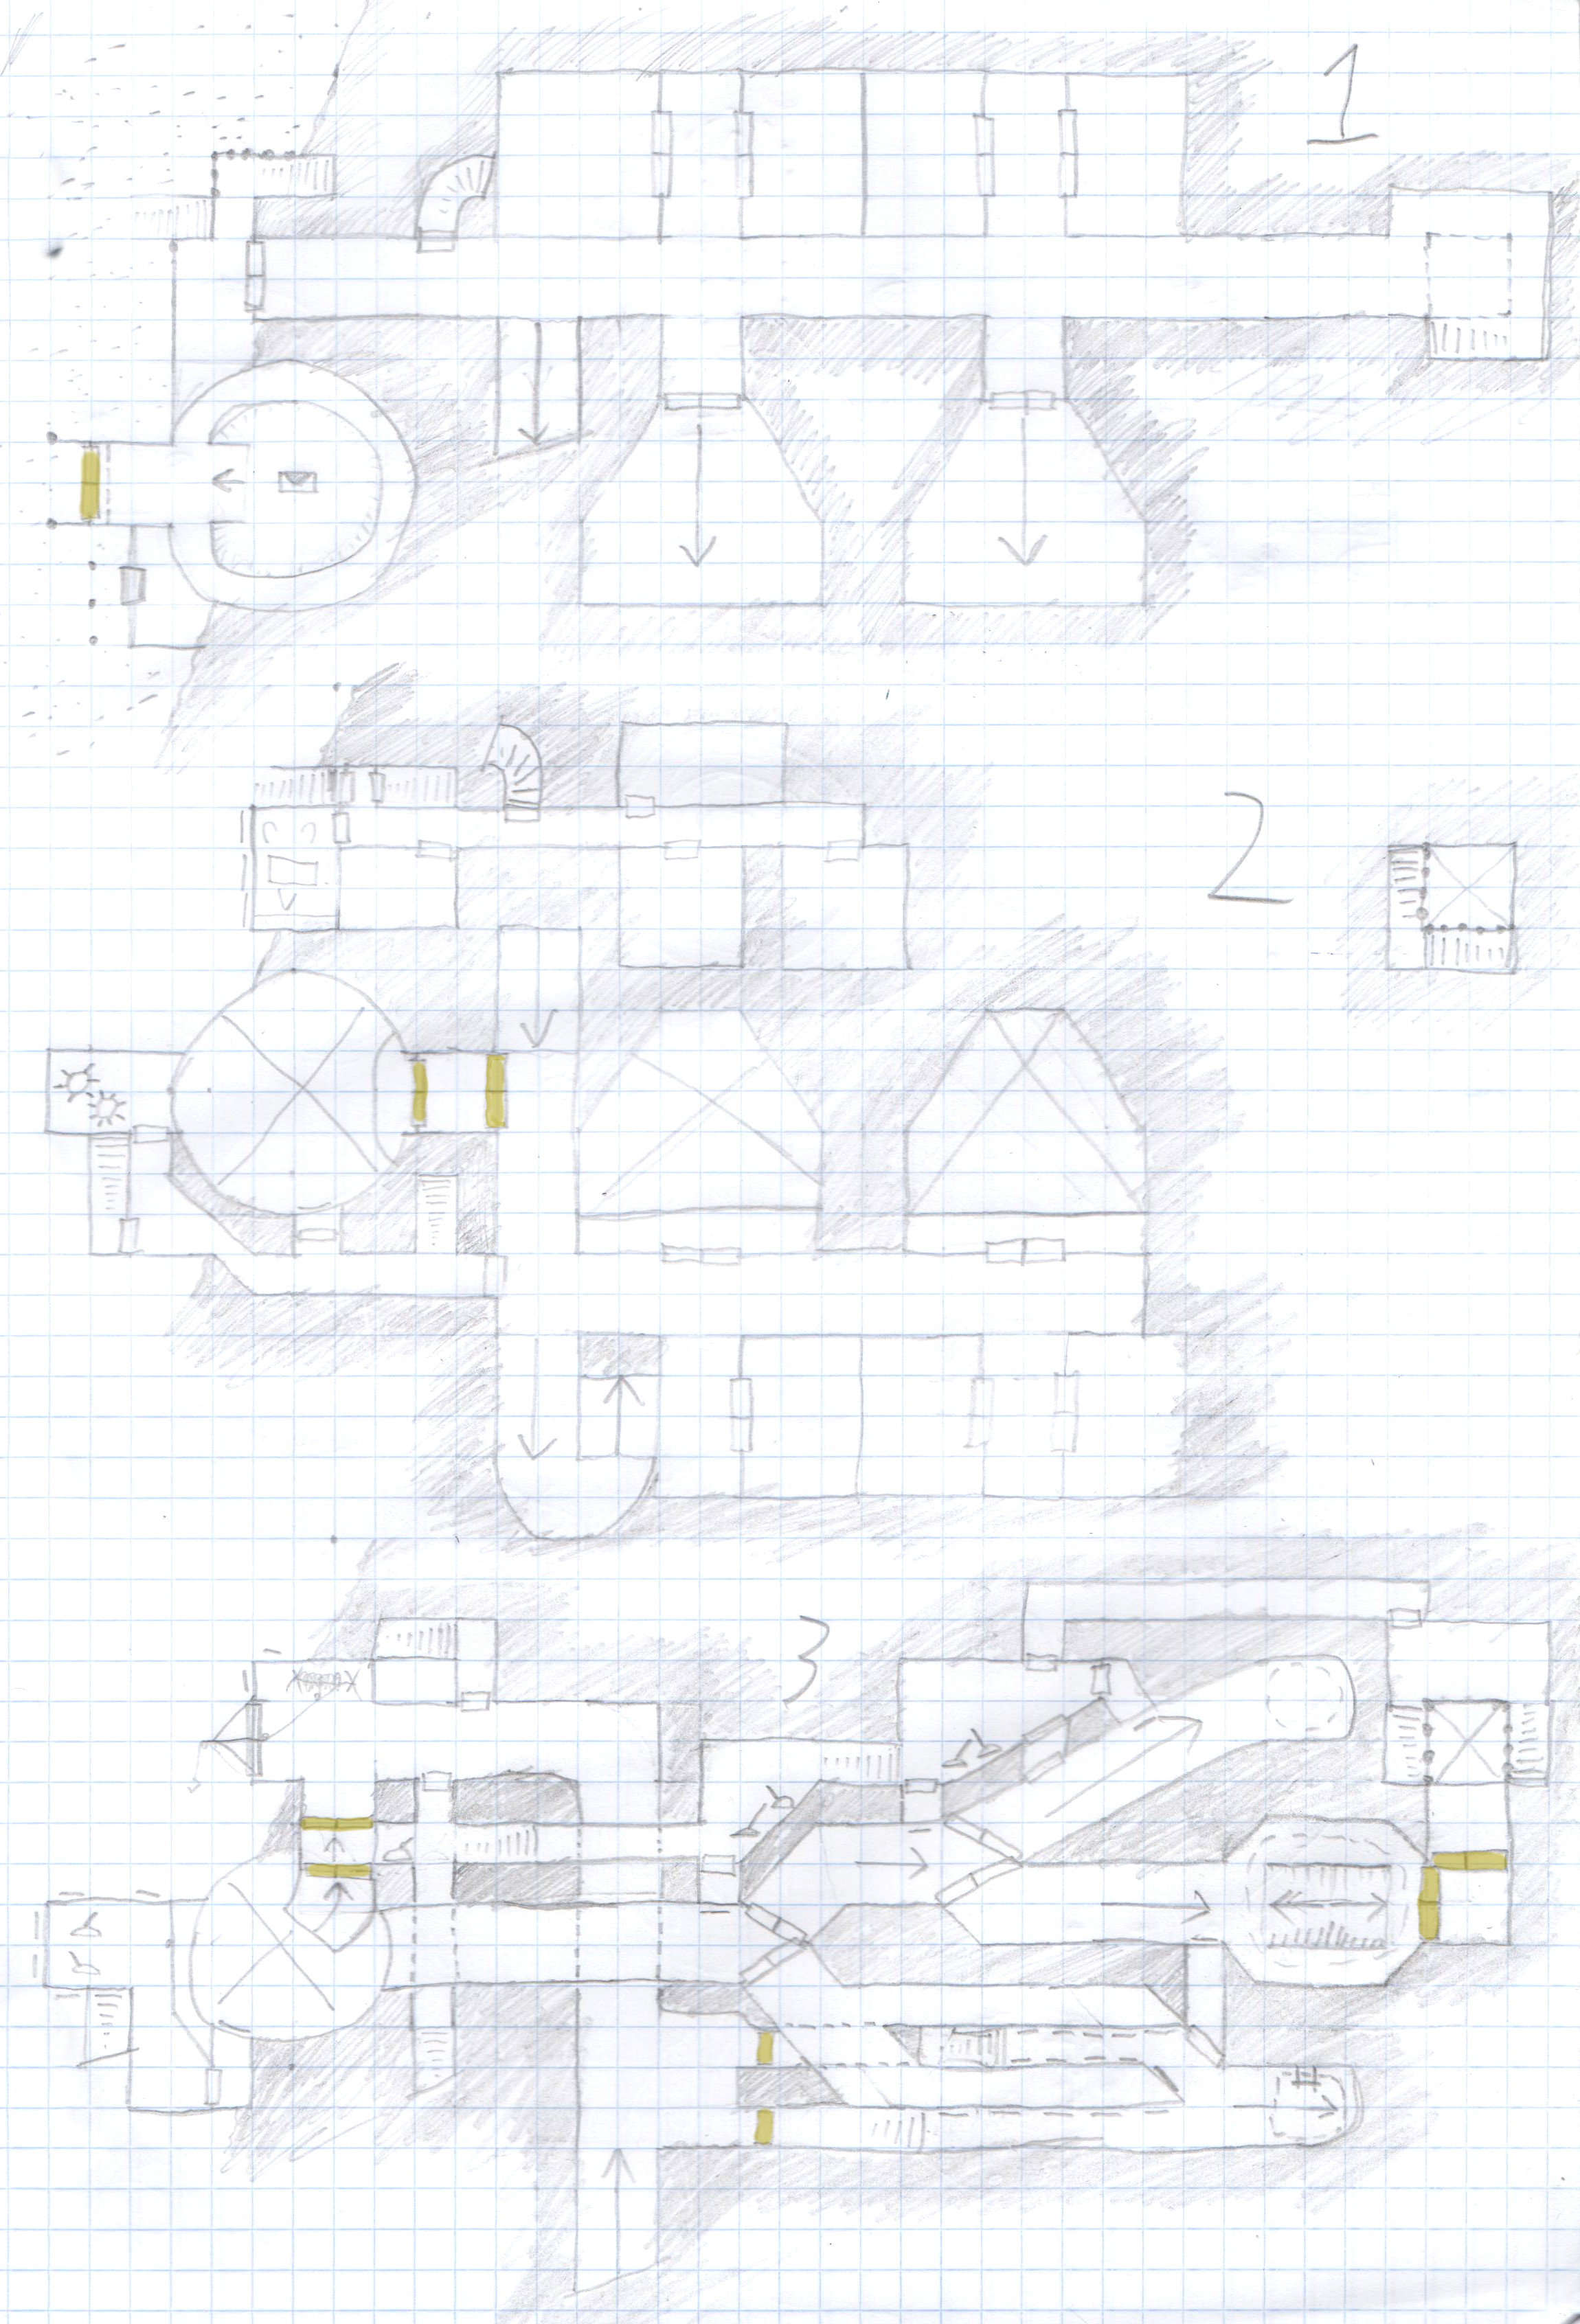 A 30-room dungeon in three levels, with lots of inter-level connections.